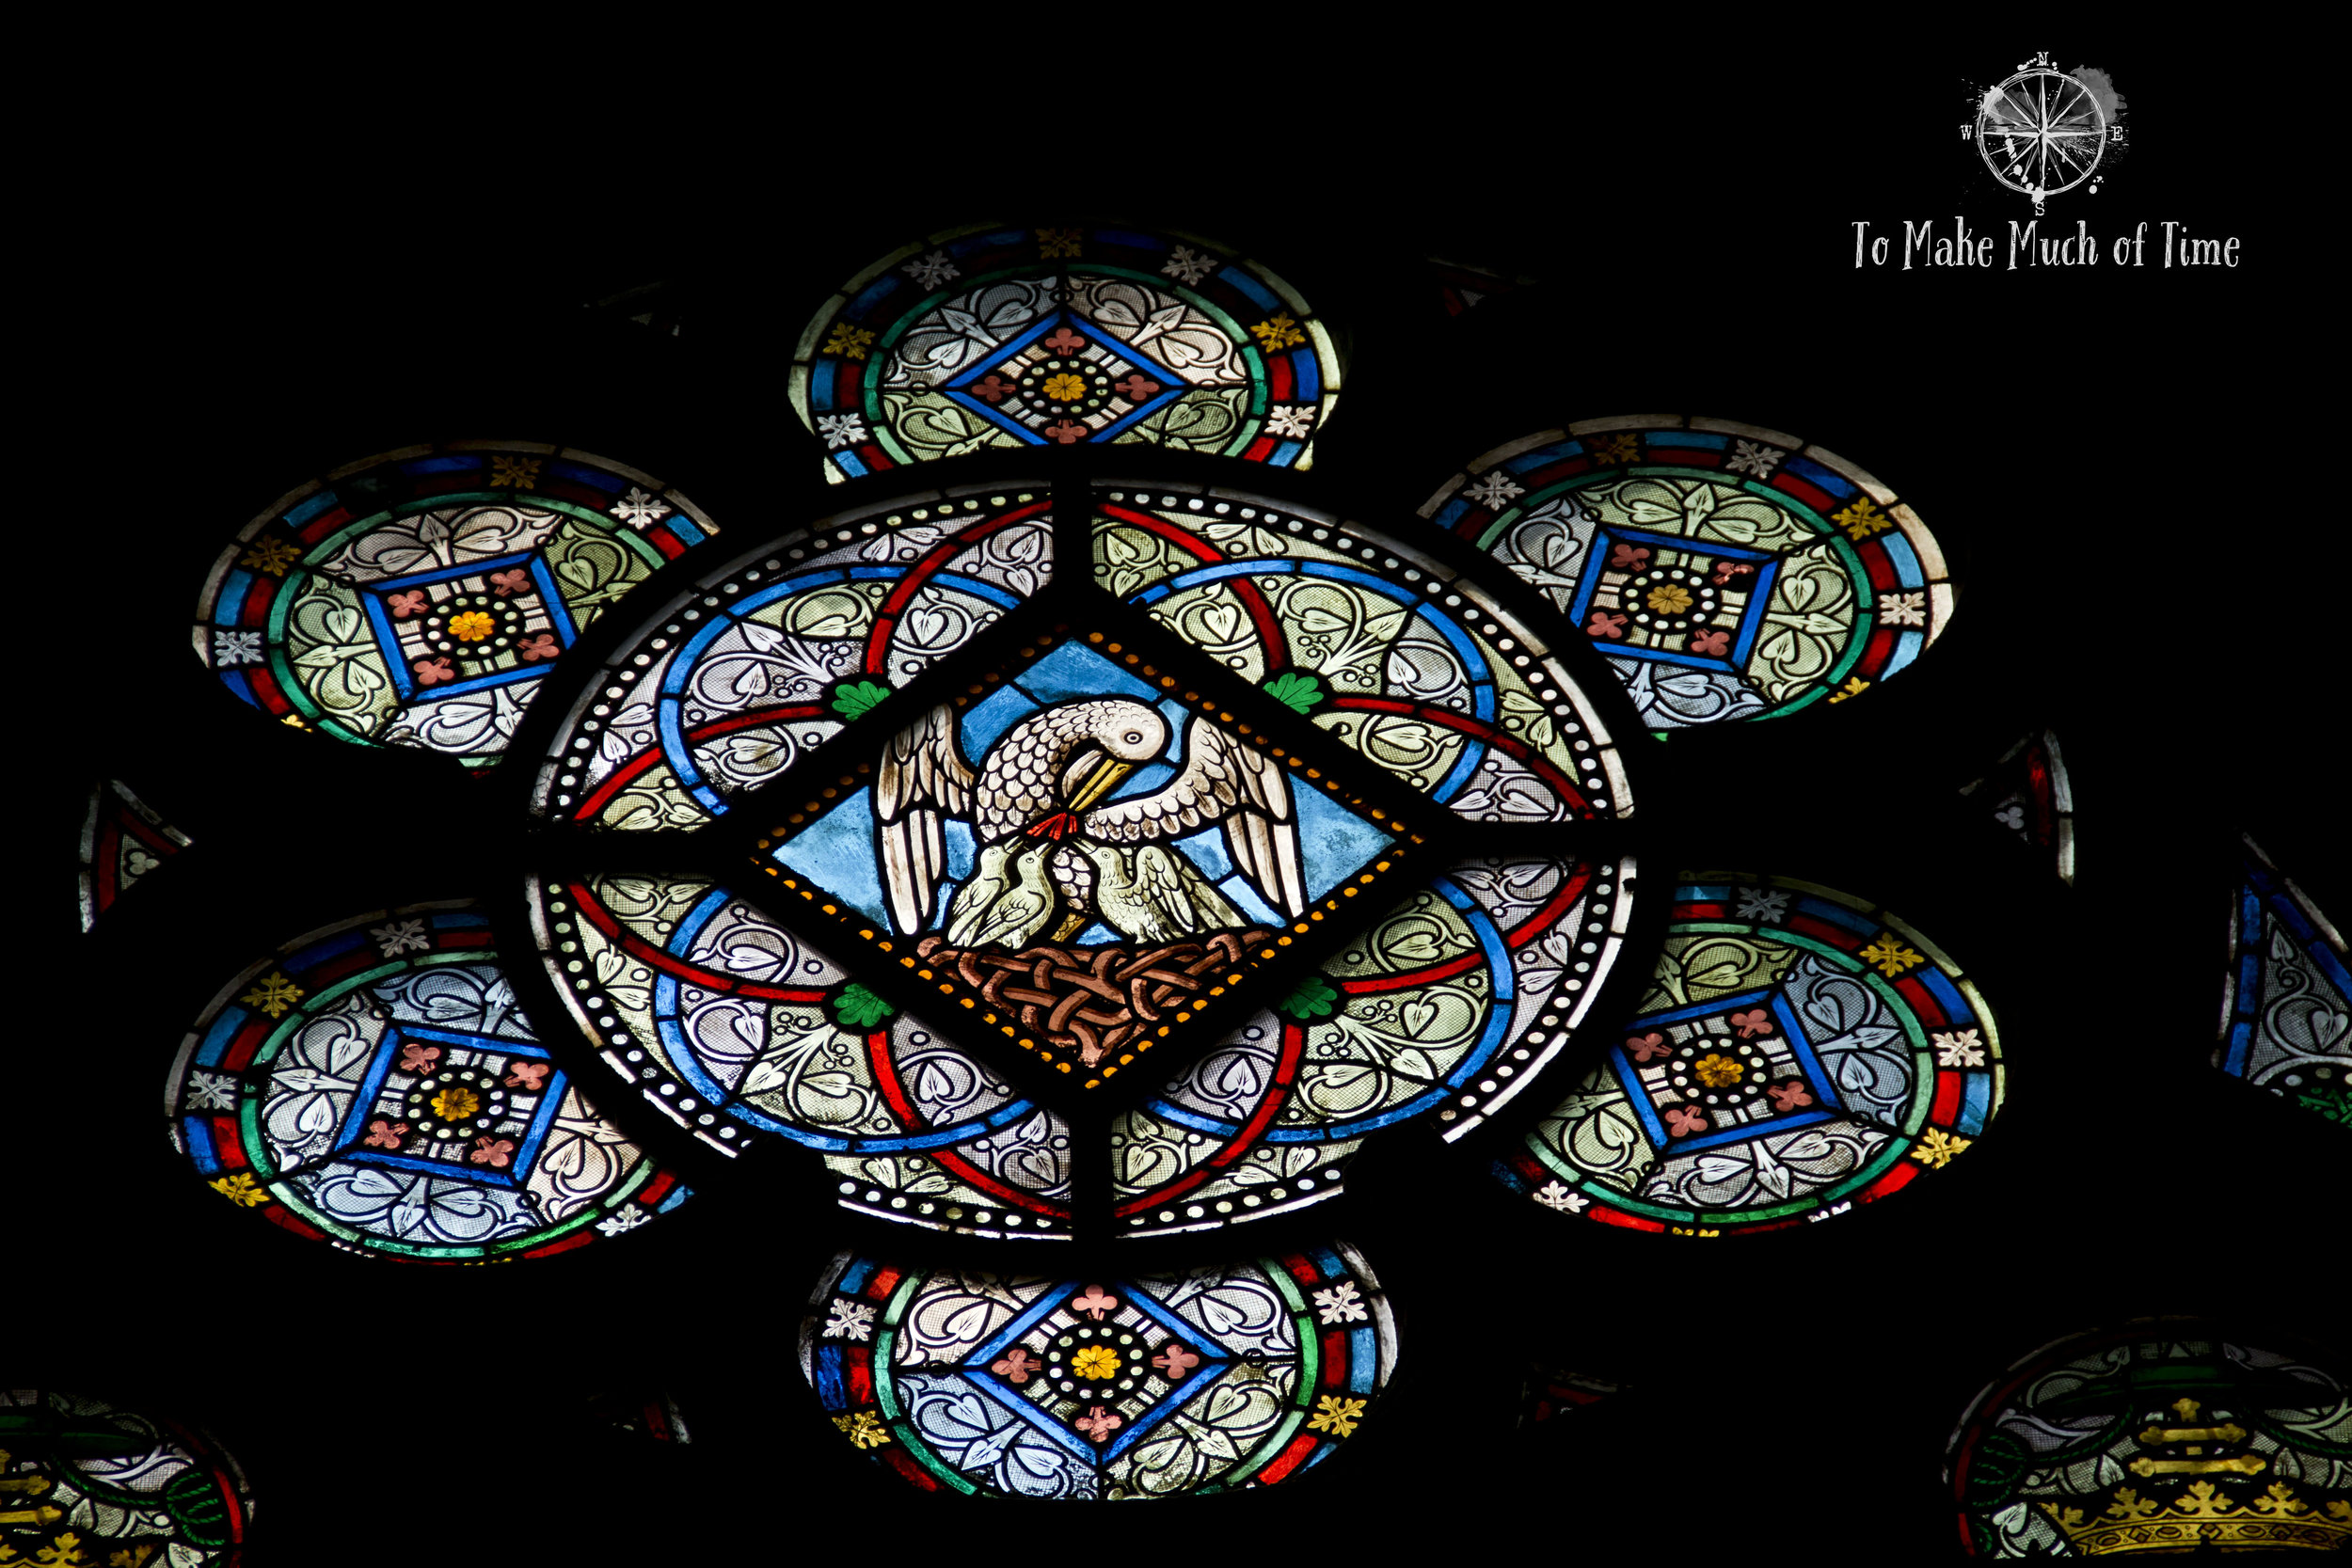 The stained glass of Notre Dame is amazing.